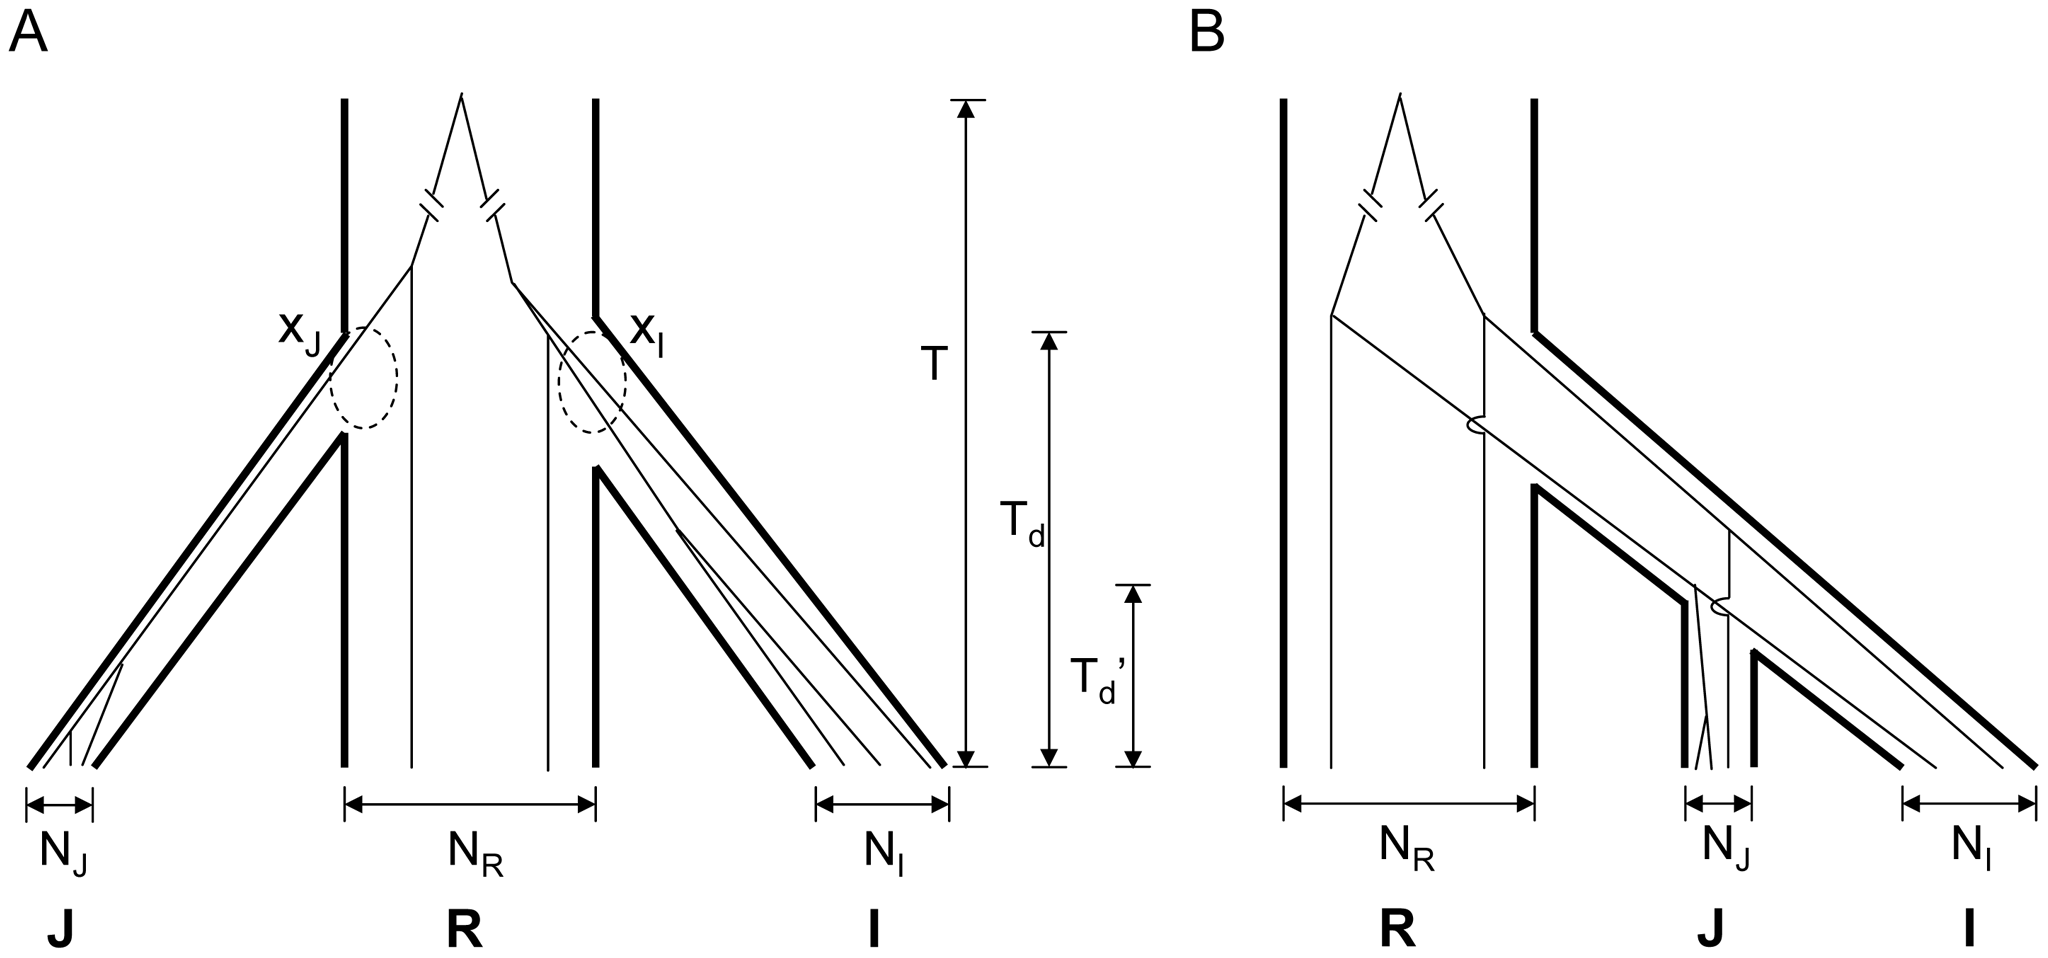 Two models for the domestication of <i>indica</i> (I) and <i>japonica</i> (J).